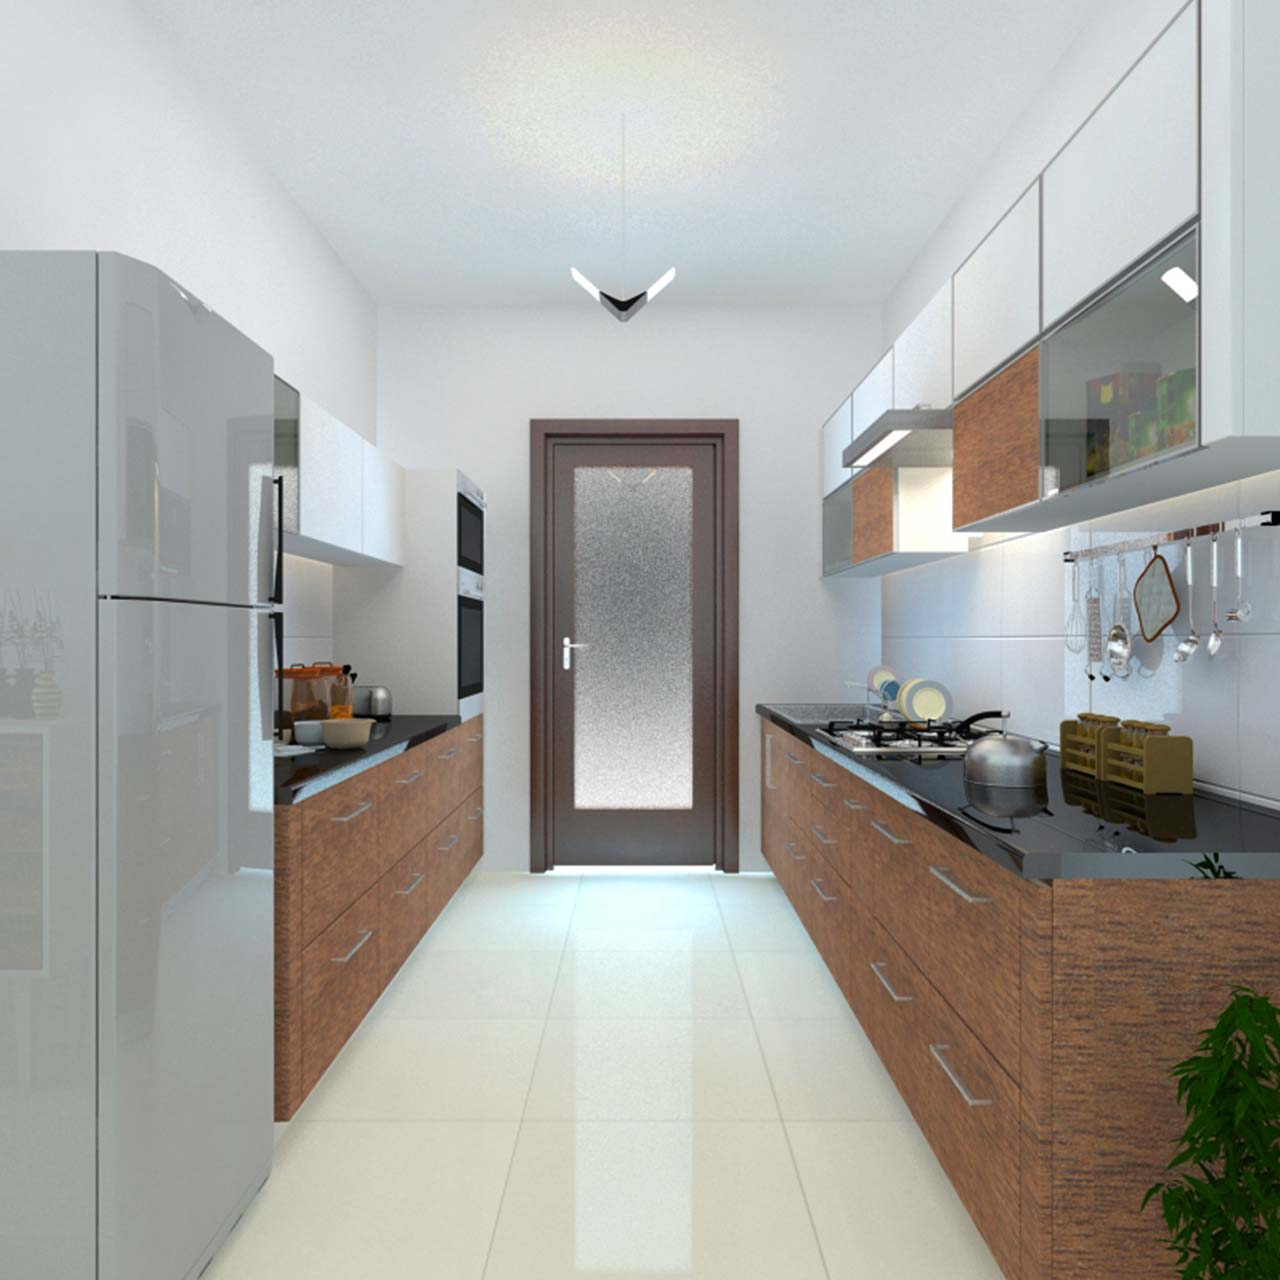 small kitchen layouts with parallel kitchen and a door in between and white colour cabinets and white tiles on the floor in kitchen layouts with island and pantry with different kitchen designs